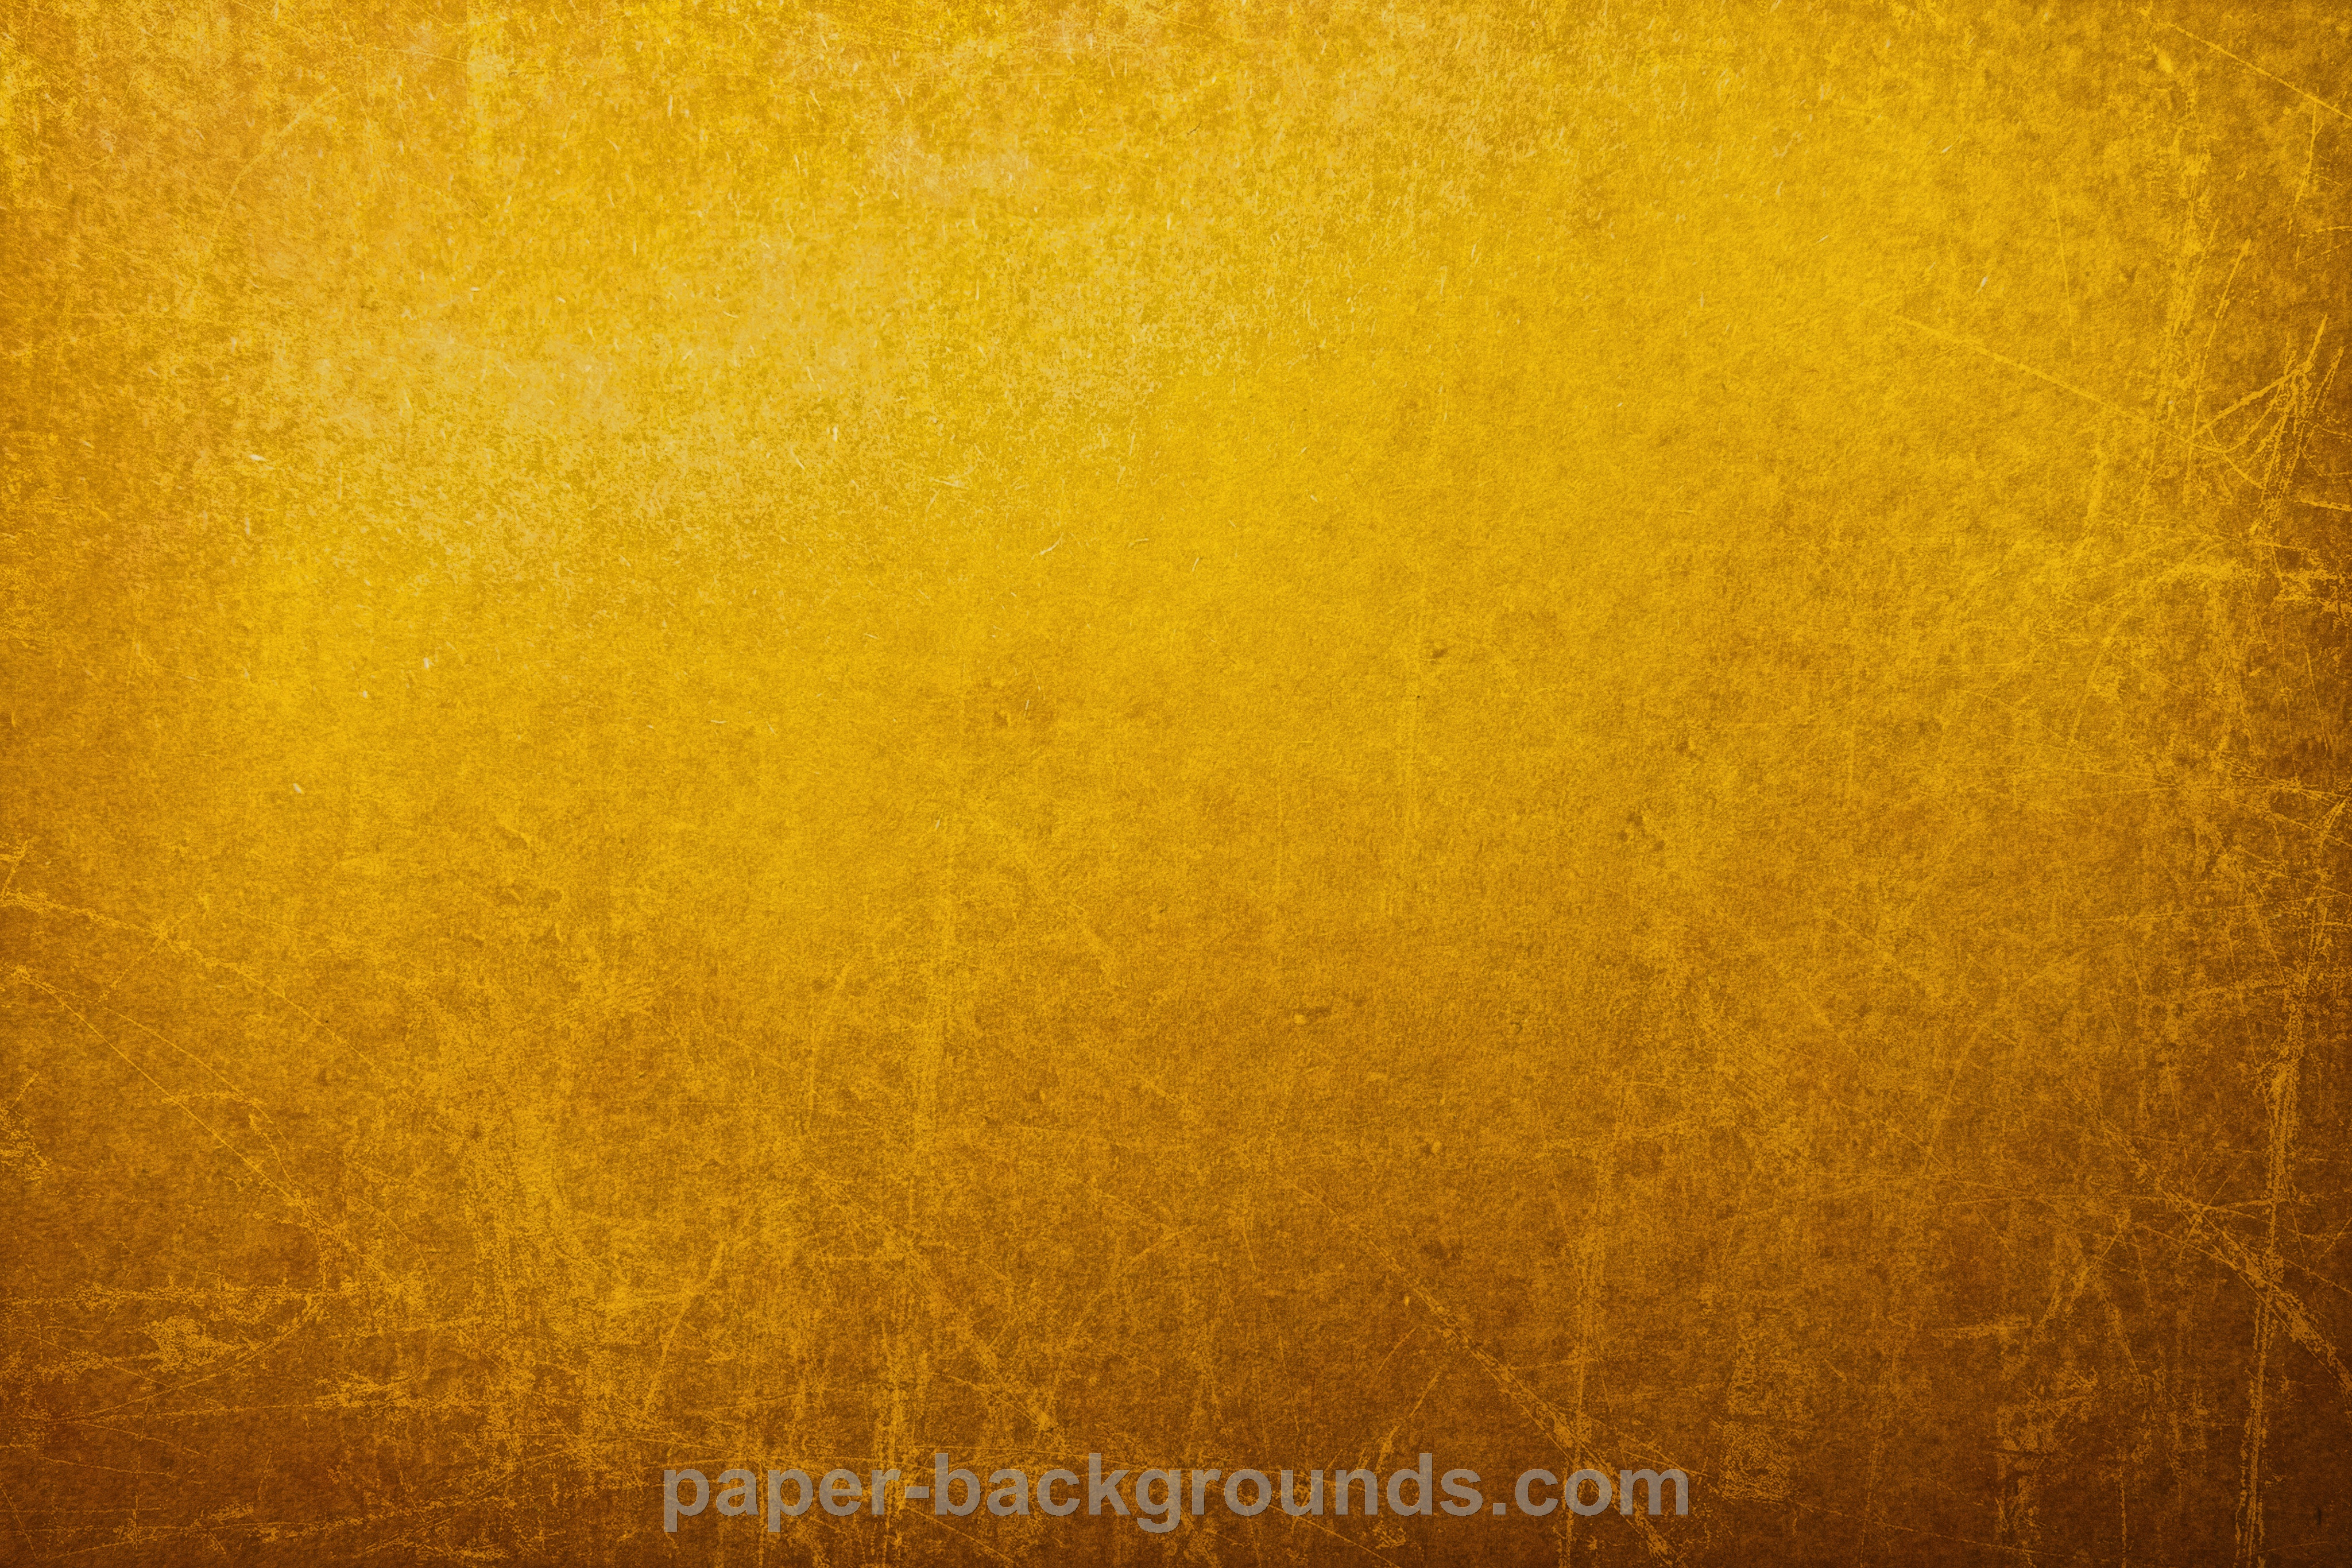 Orange Scratched Vintage Background Texture